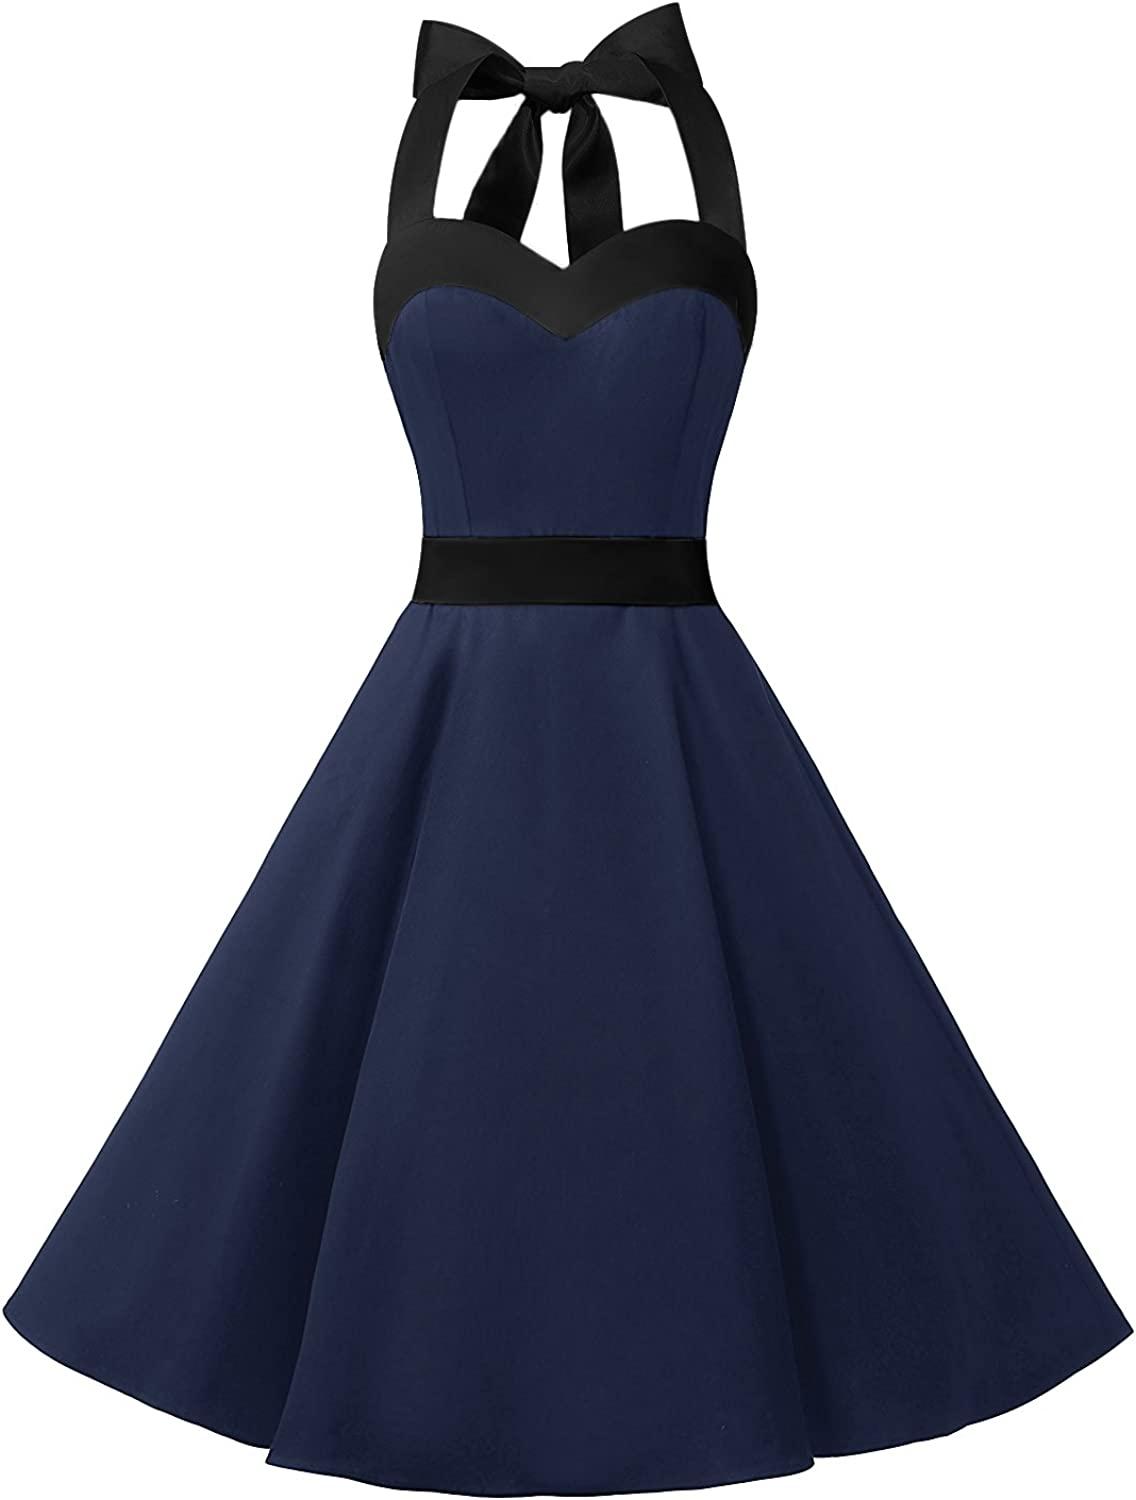 TALLA XL. Dresstells® Halter 50s Rockabilly Polka Dots Audrey Dress Retro Cocktail Dress Navy Black XL